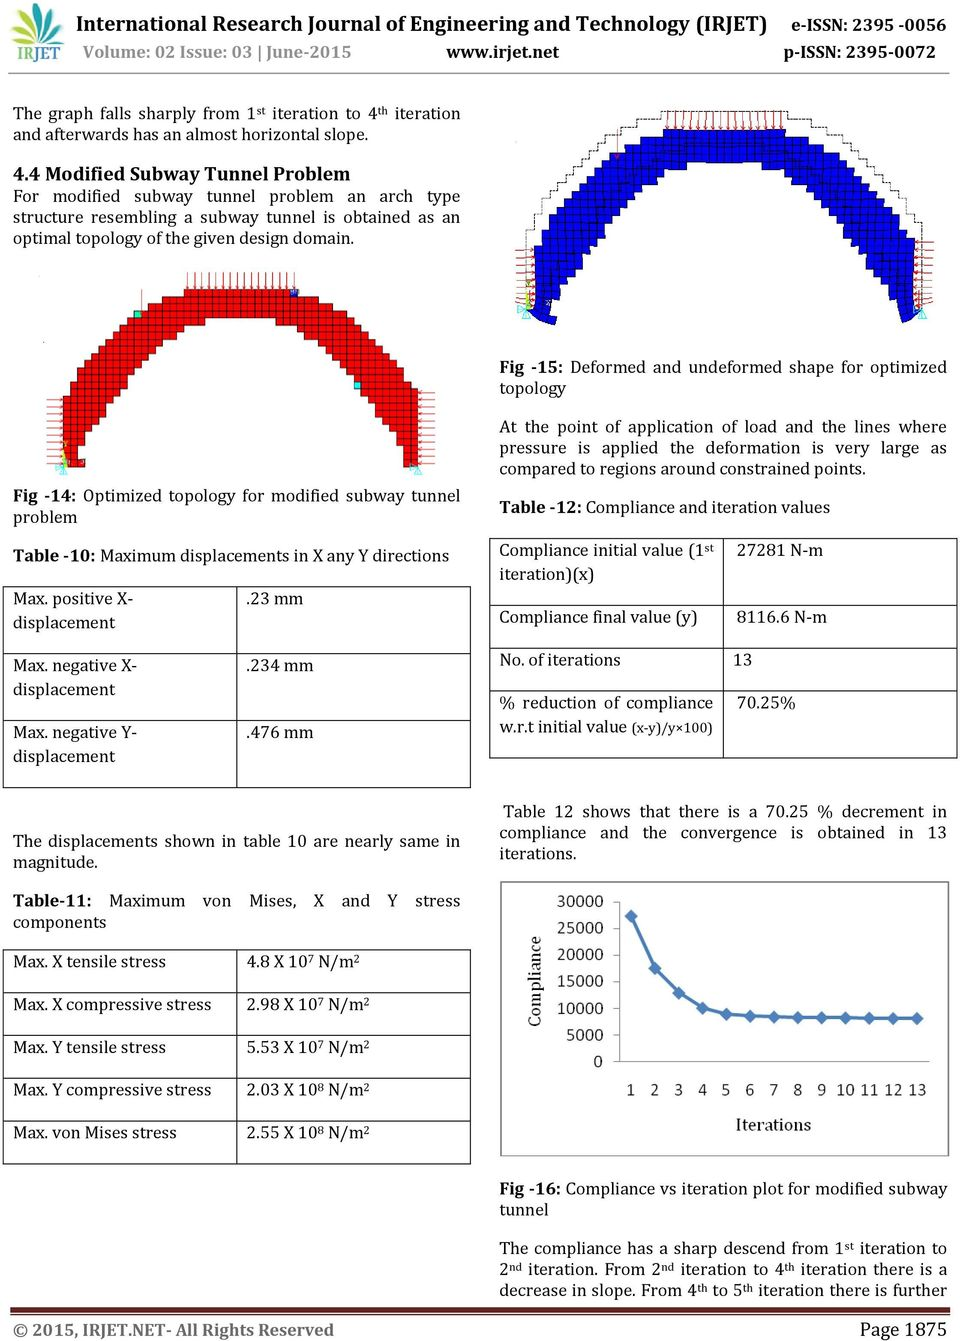 4 Modified Subway Tunnel Problem For modified subway tunnel problem an arch type structure resembling a subway tunnel is obtained as an optimal topology of the given design domain.